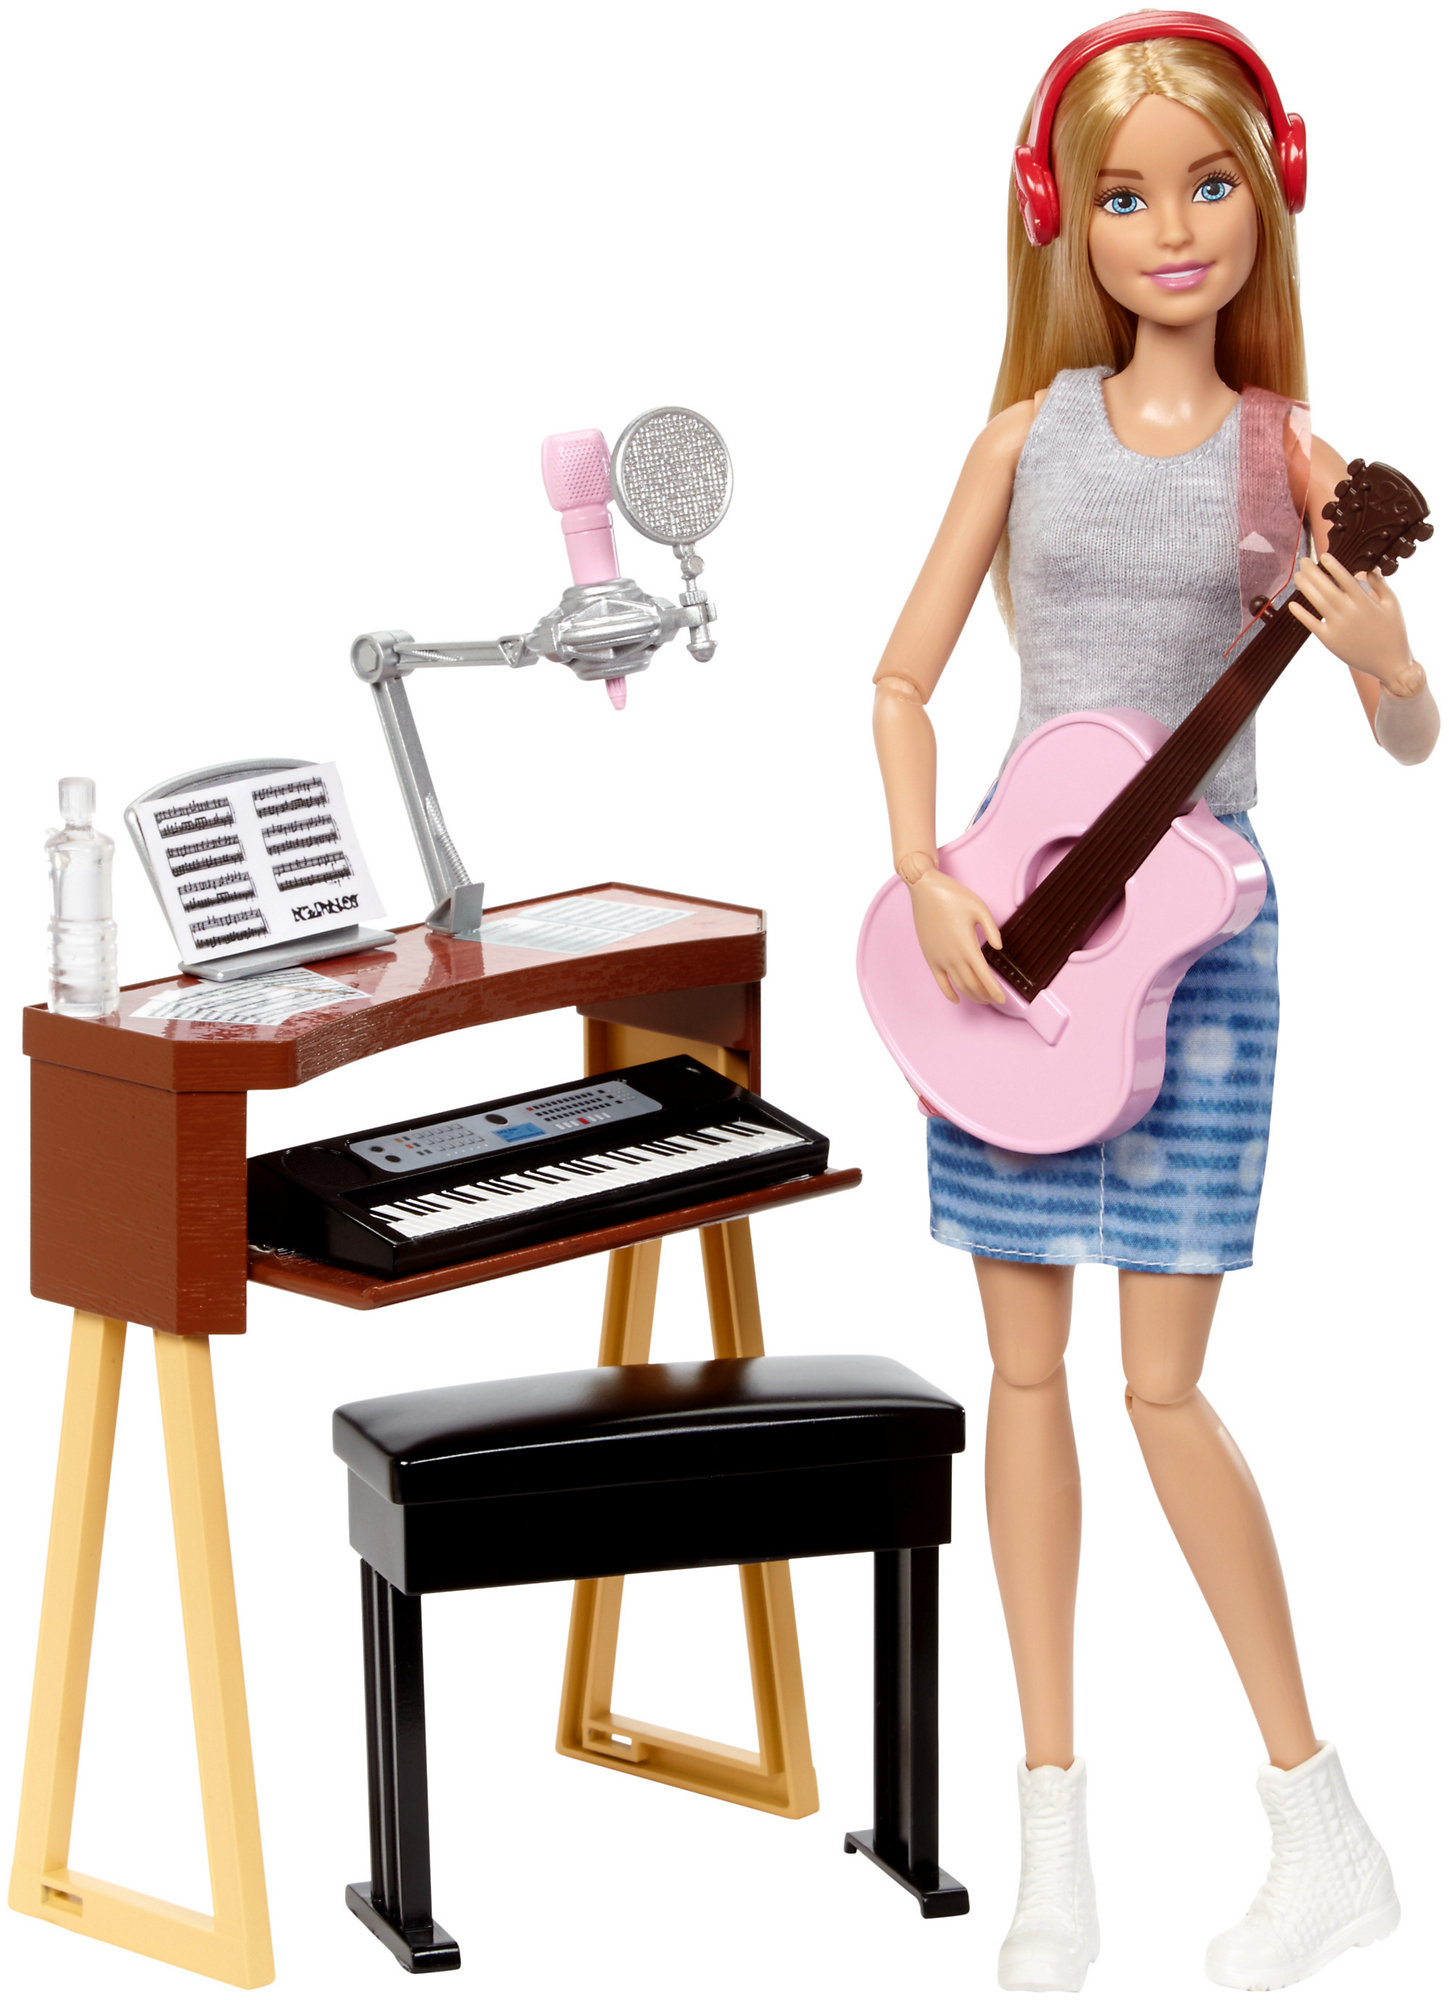 Barbie Careers Musician Doll & Playset, Blonde by MATTEL BRANDS A DIVISION OF MATTEL DIRECT IMPORT INC